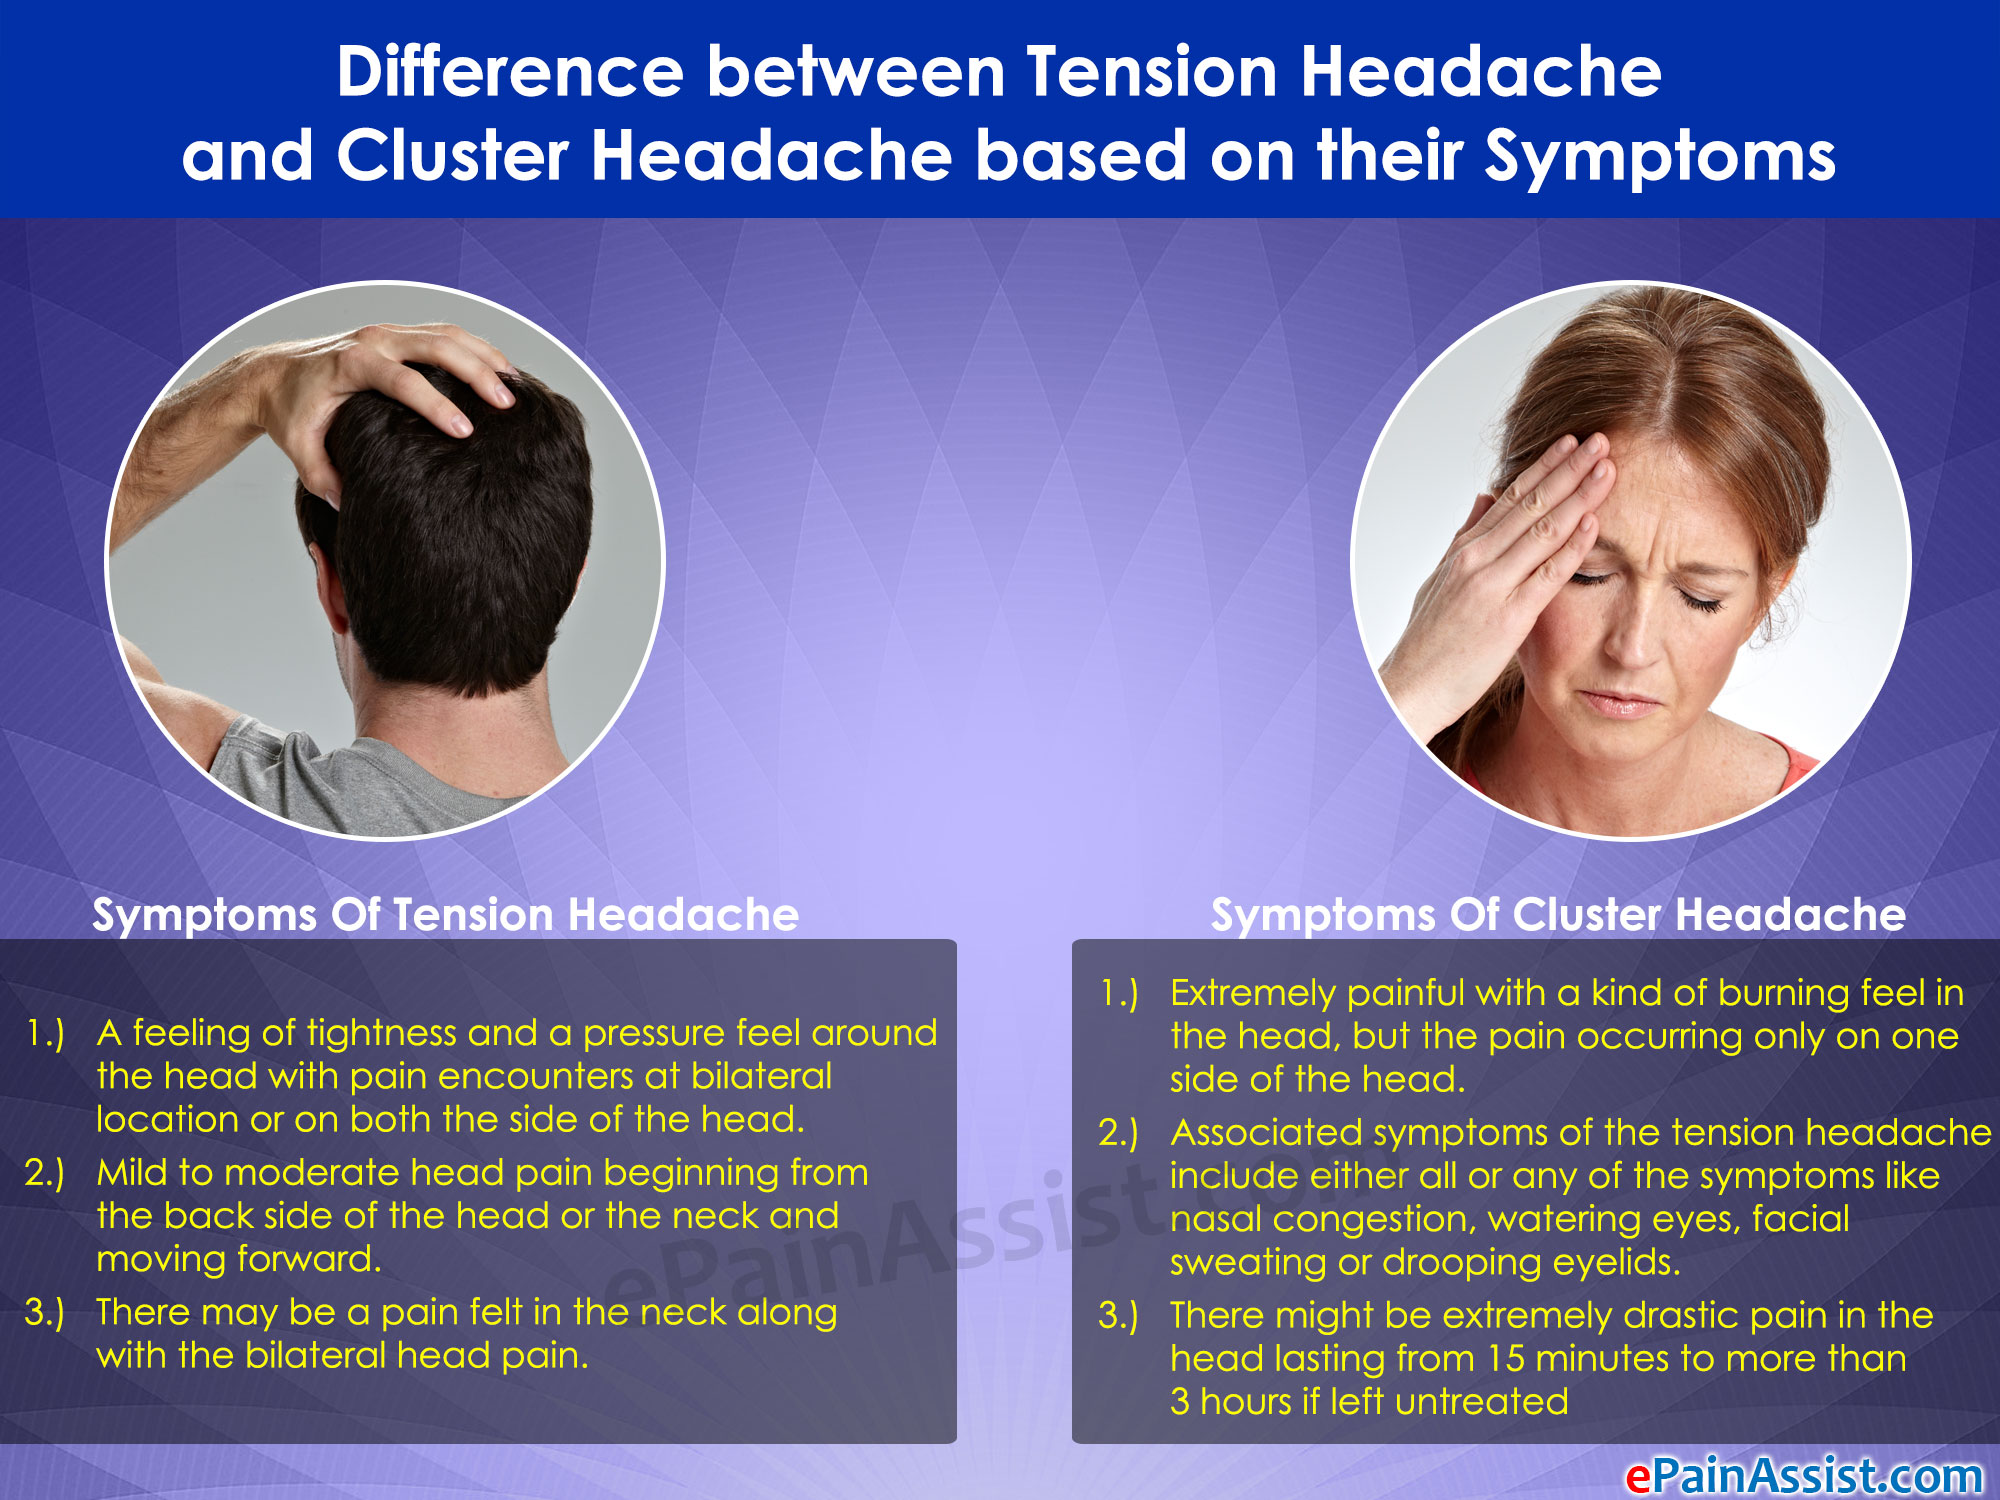 difference between tension headache and cluster headache, Skeleton